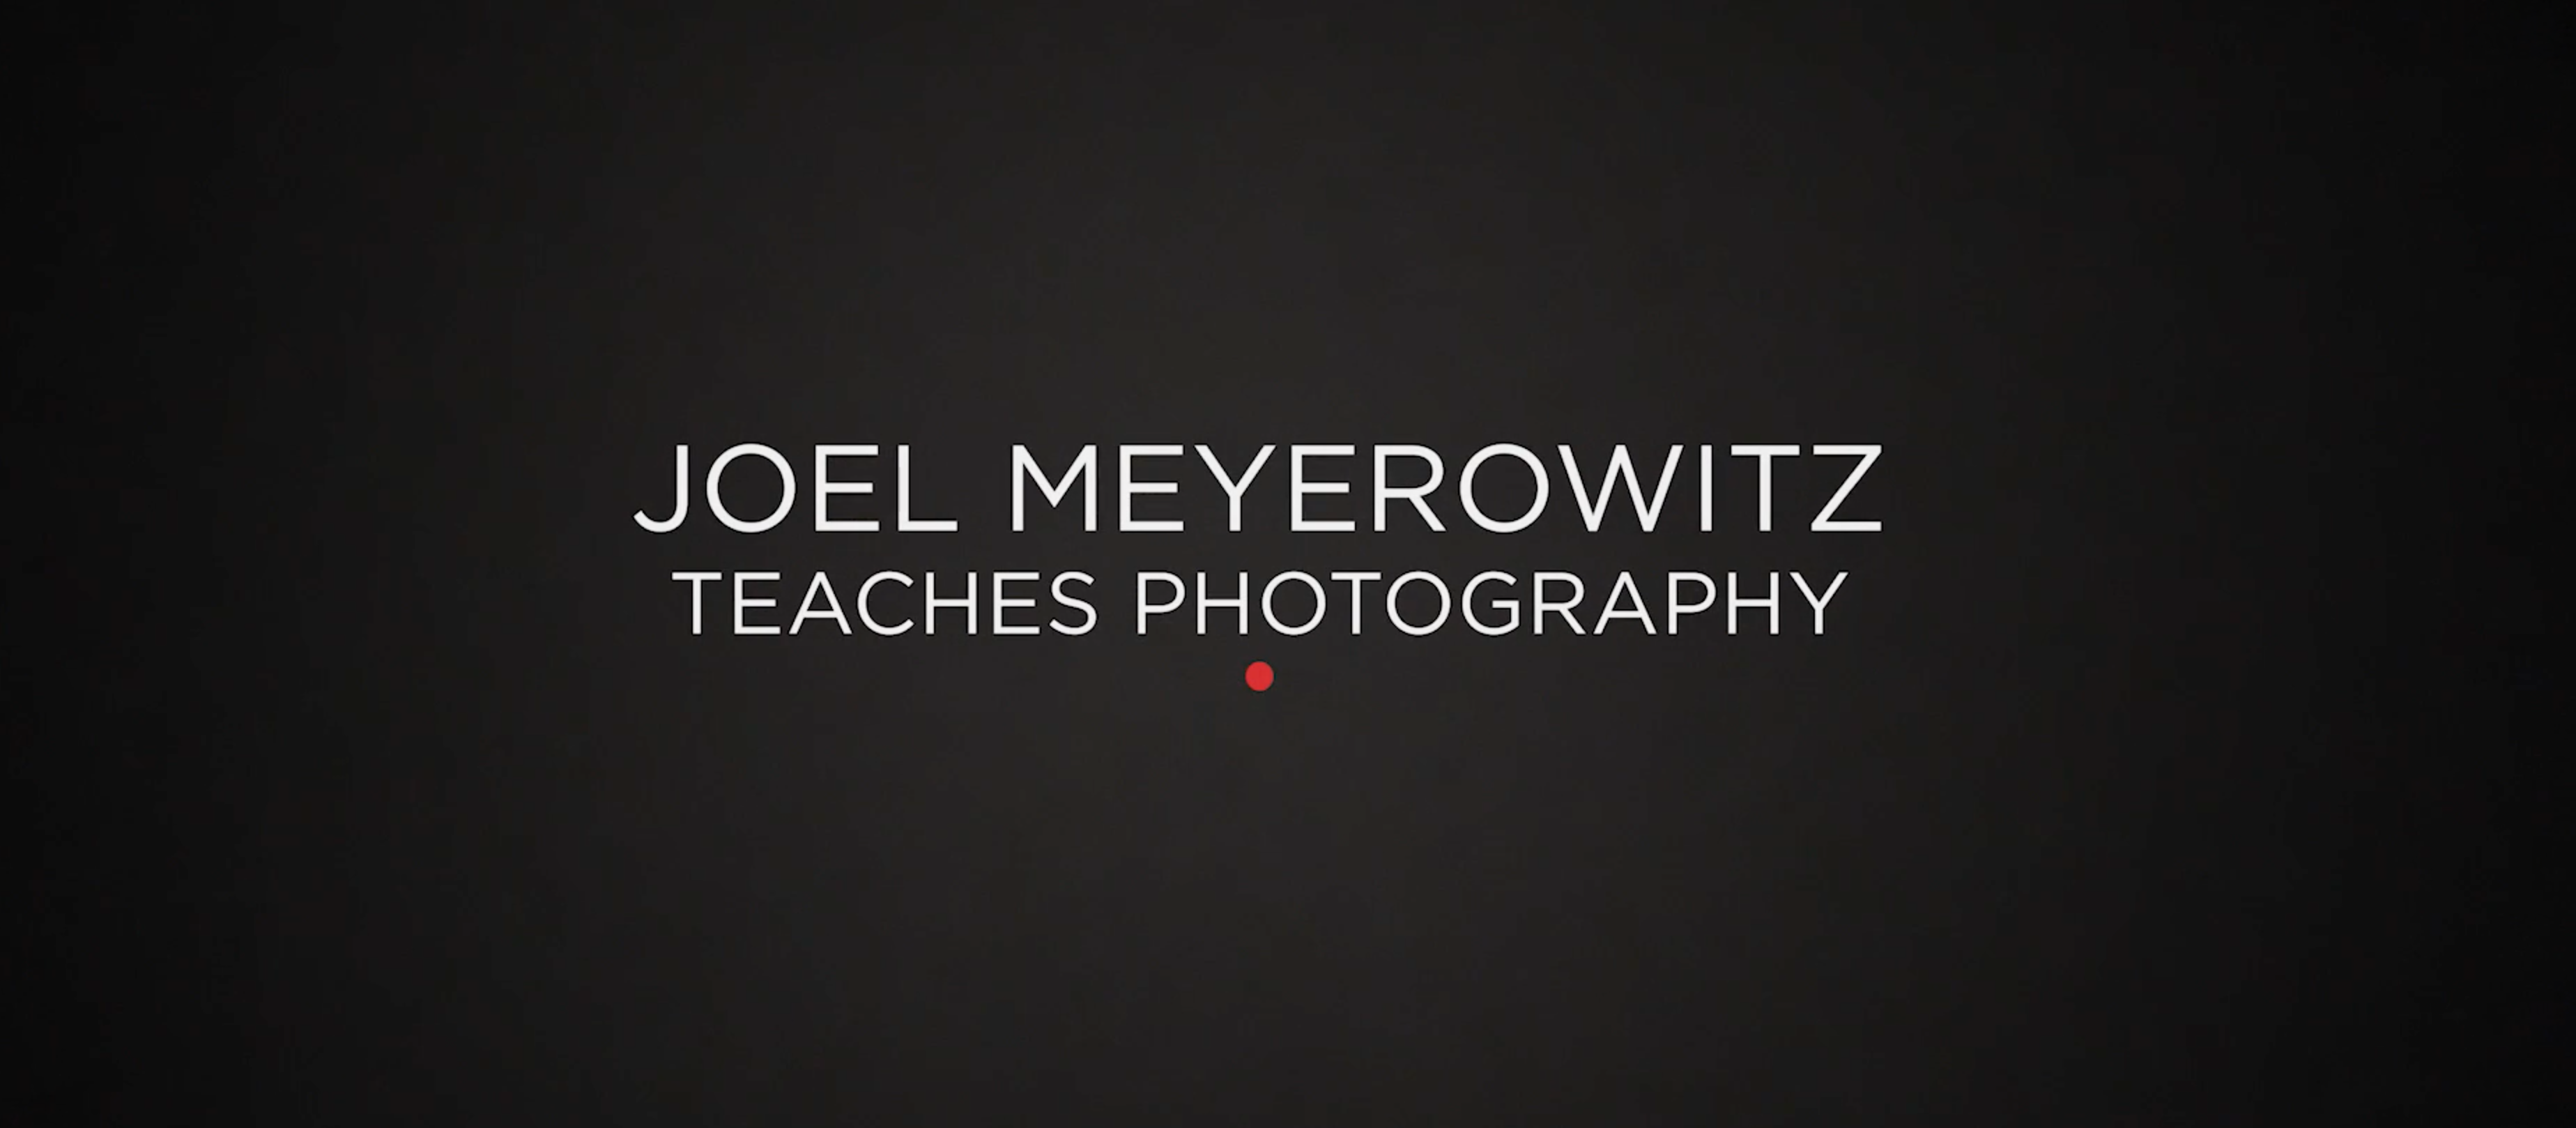 Review: Masters of Photography: Joel Meyerowitz